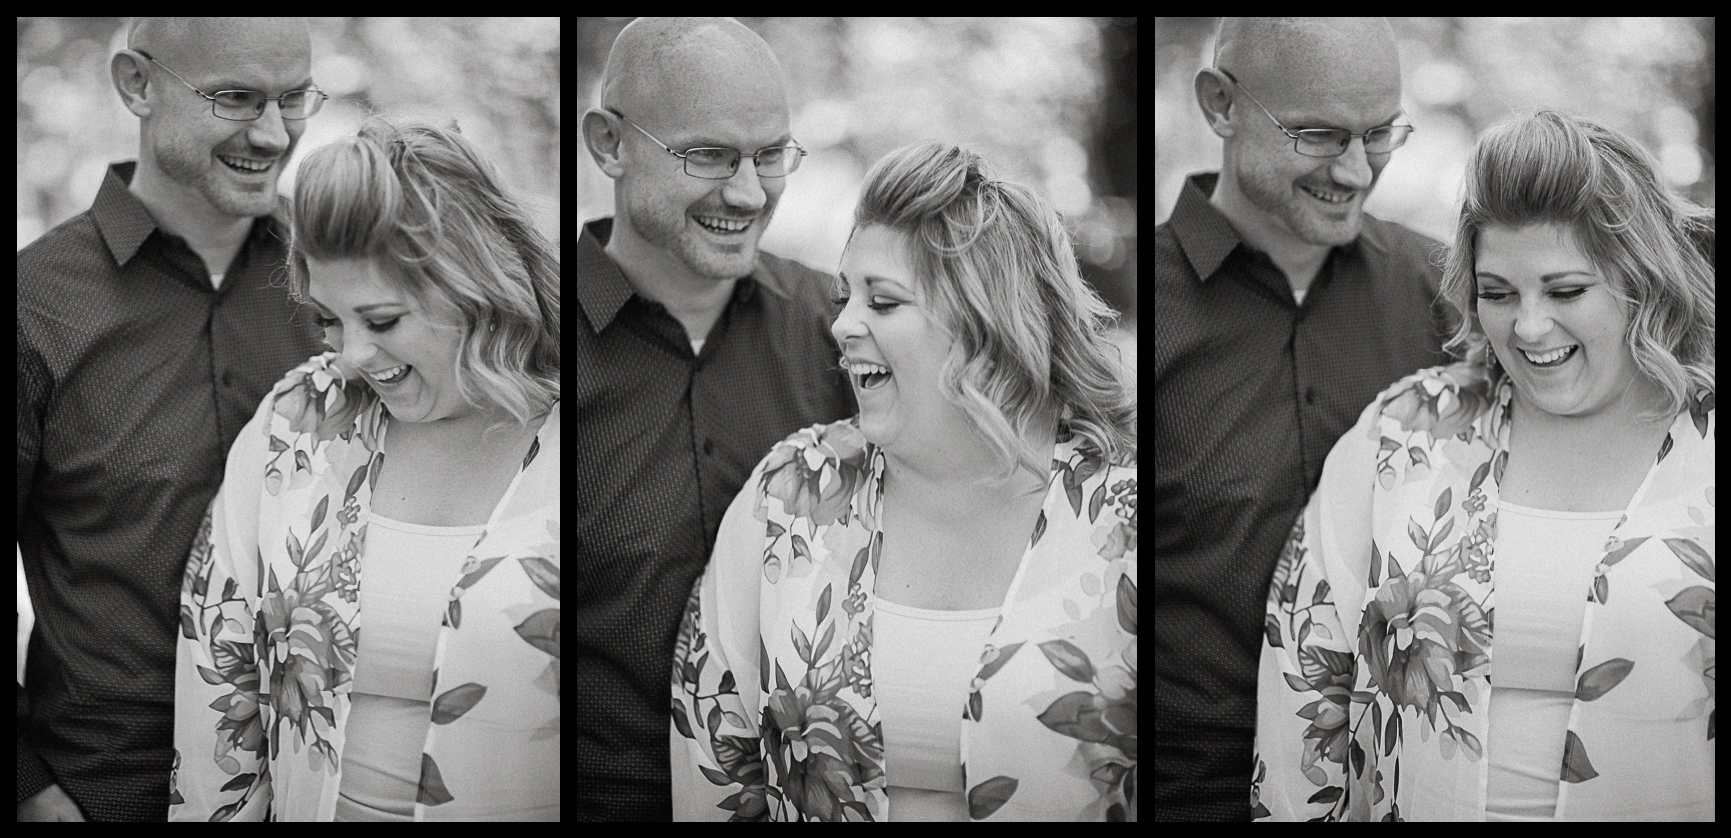 breighton-and-basette-photography-copyrighted-image-blog-jennifer-and-sean-engagement-collage-2.jpg